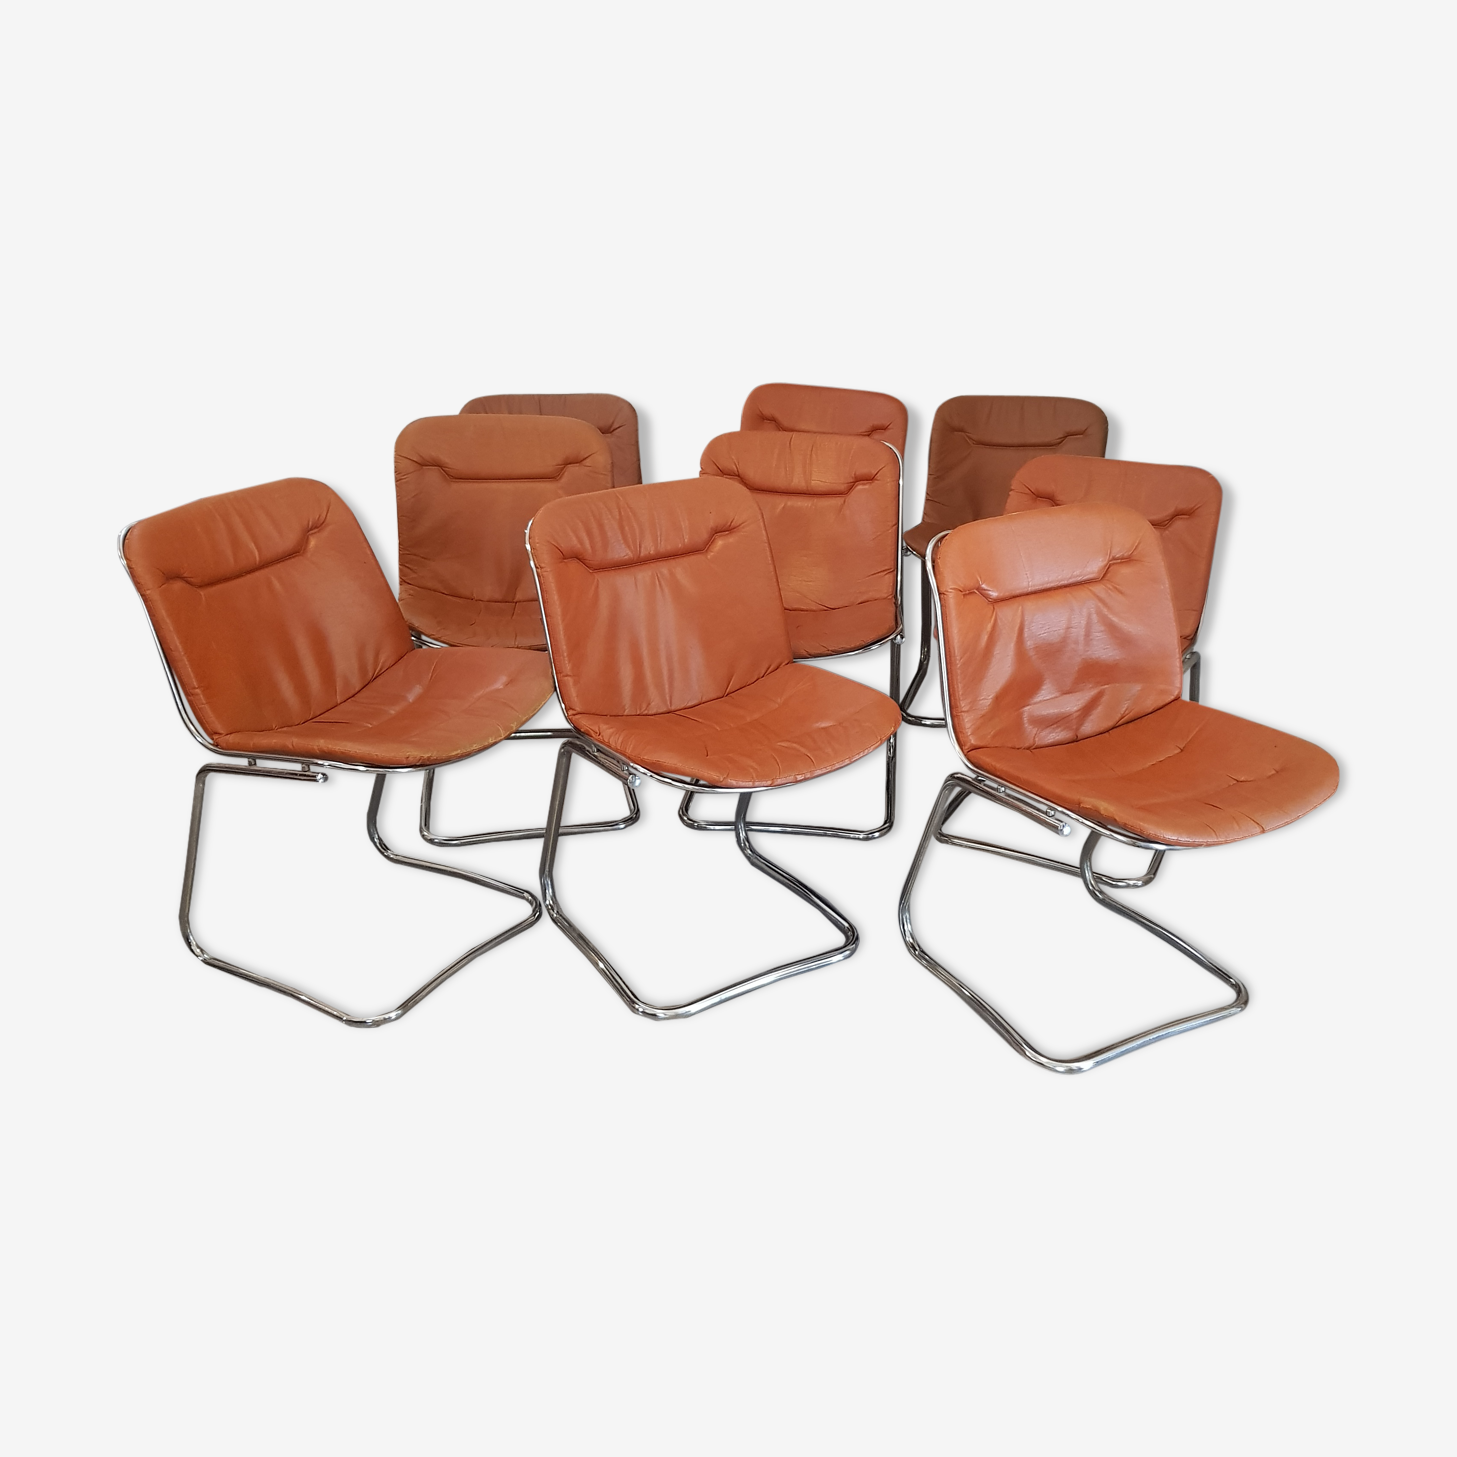 Set of 9 chrome chairs 1970 's